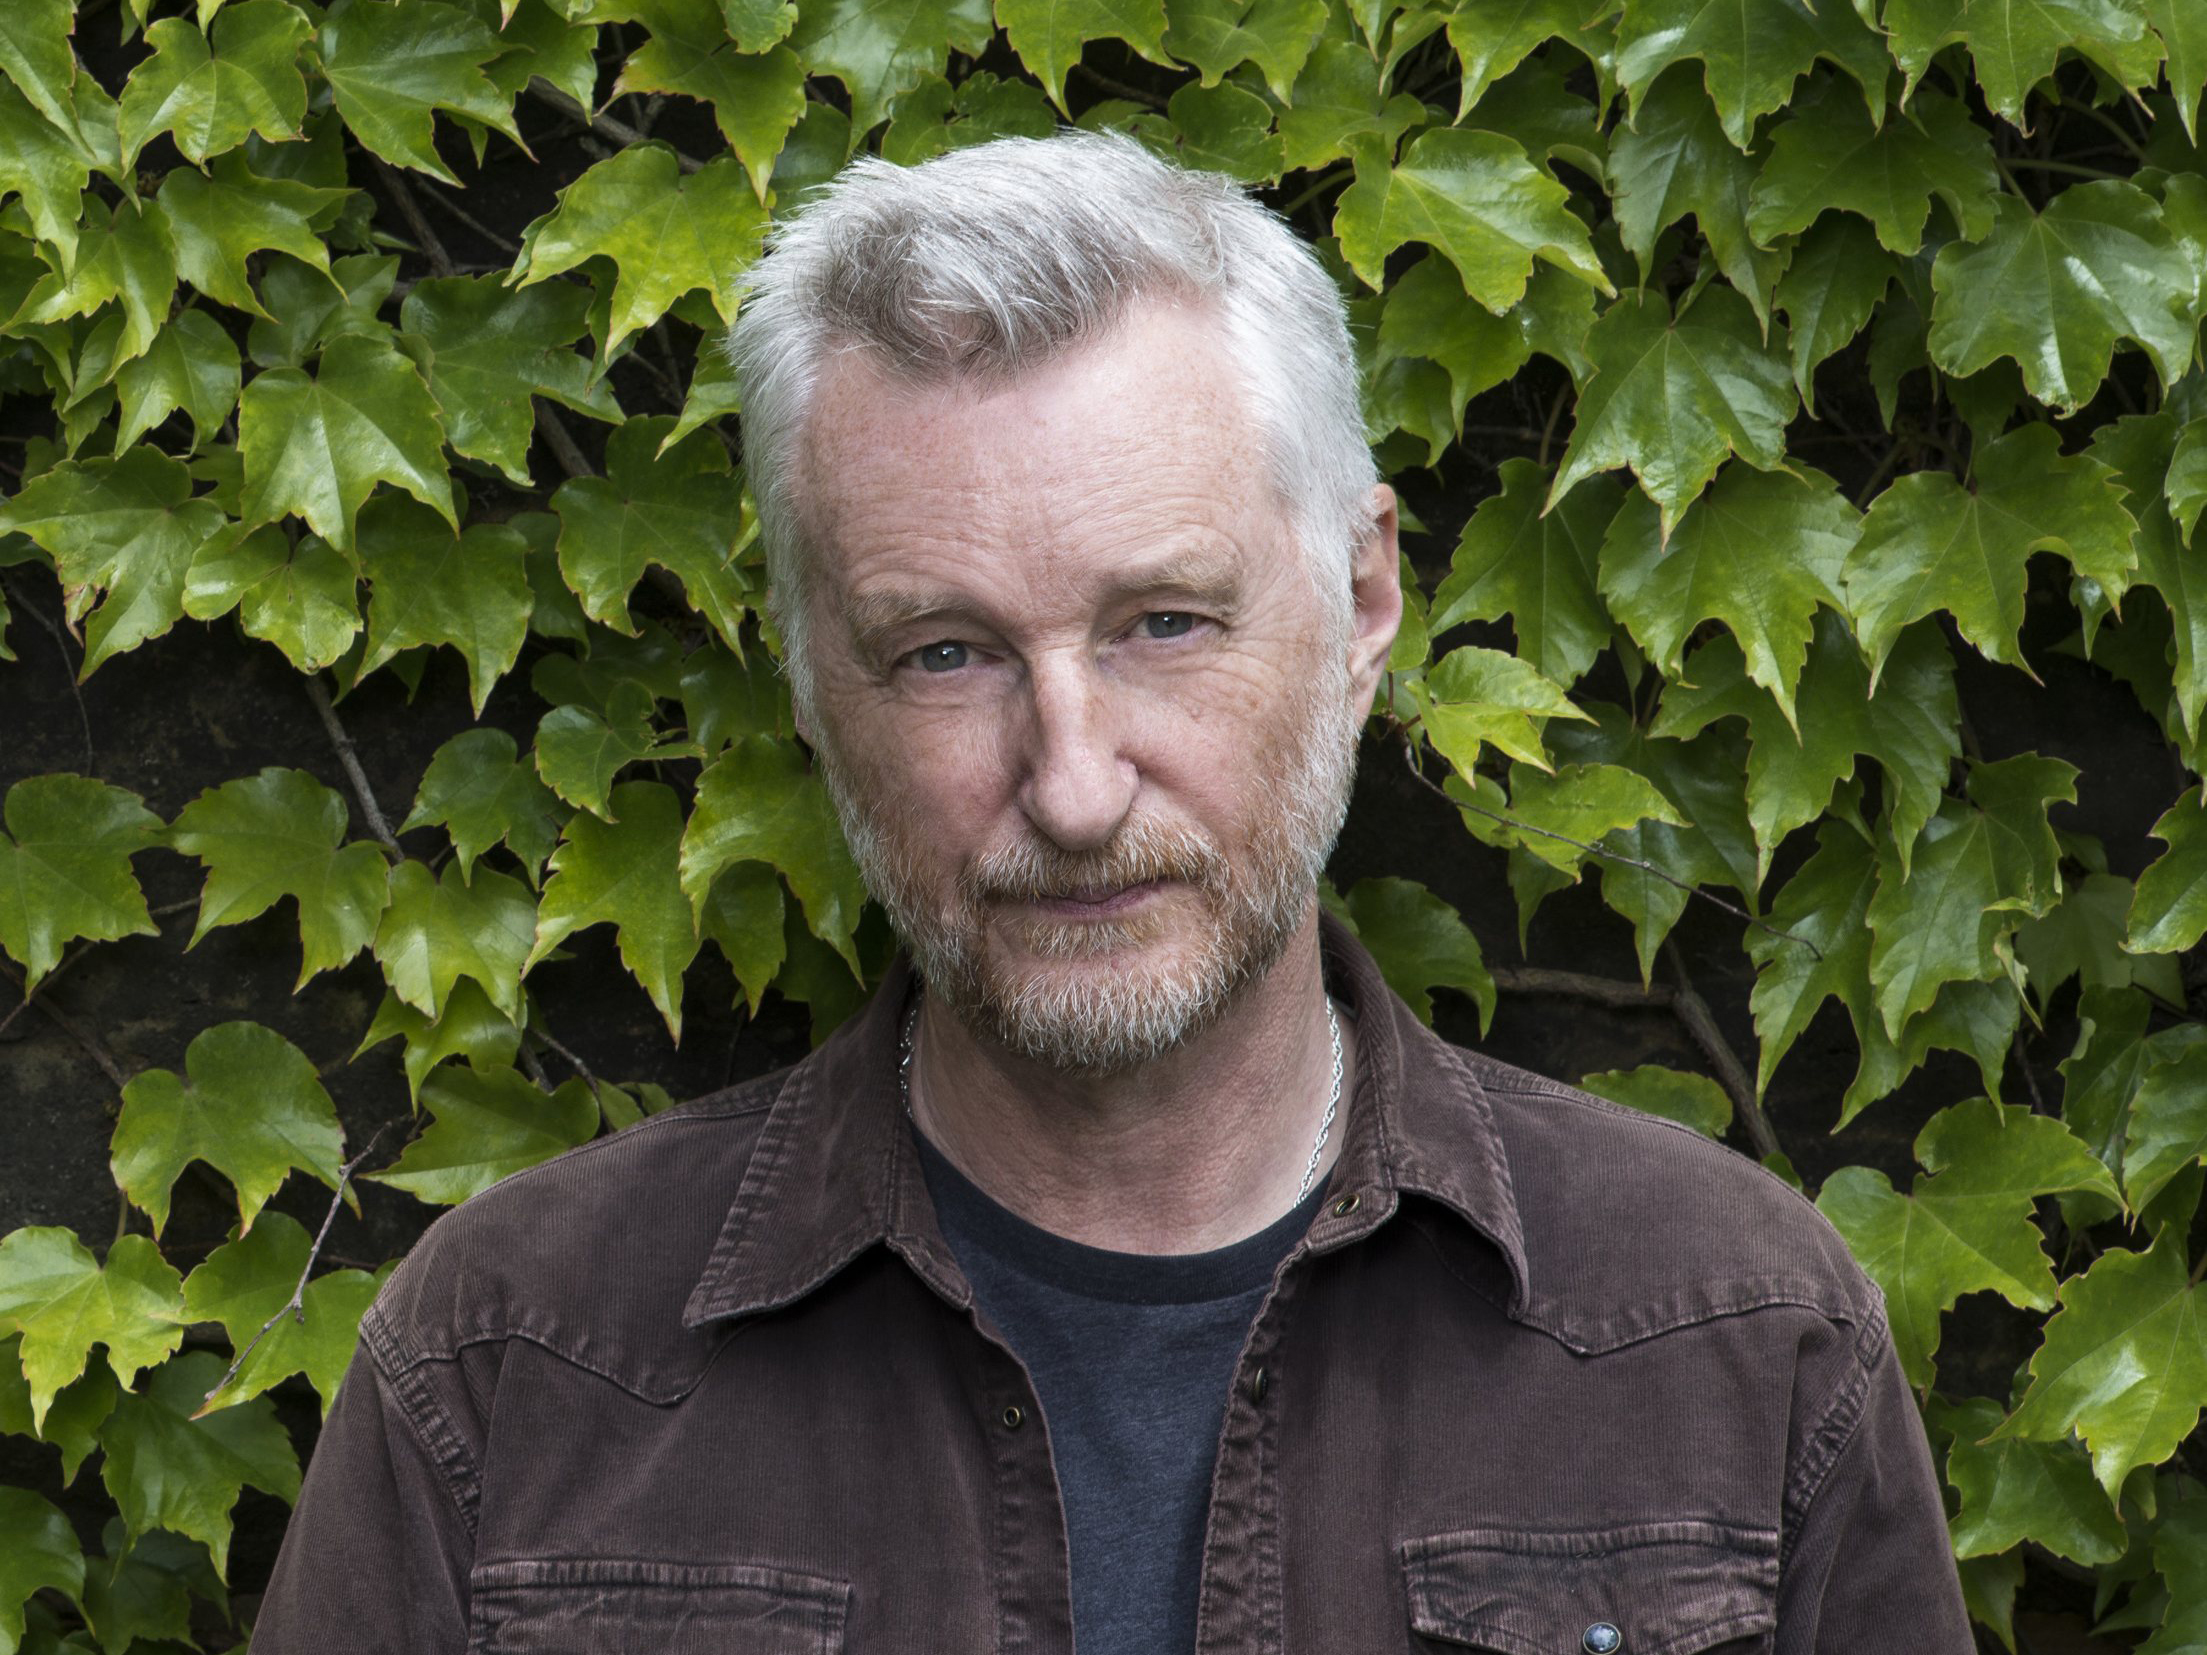 Billy bragg till way out west